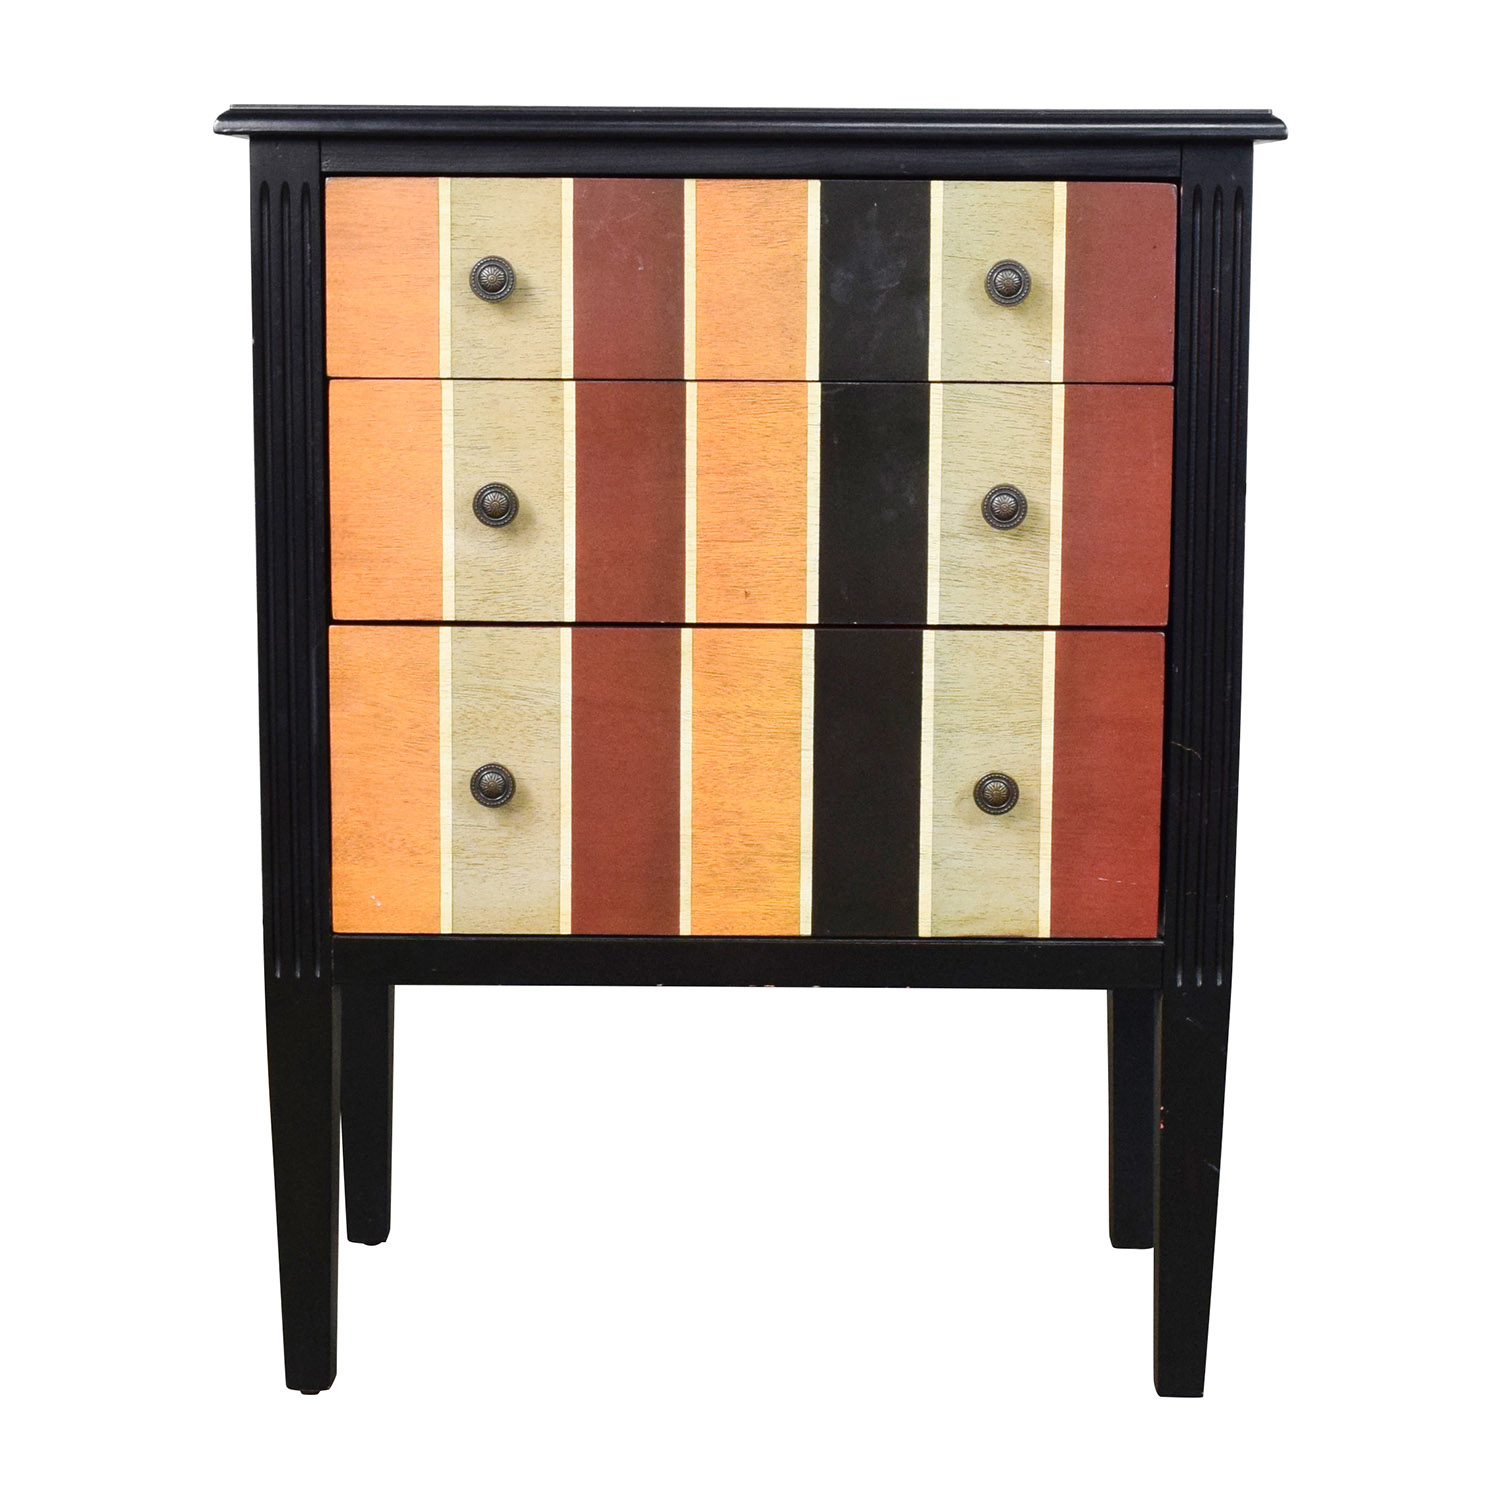 buy Pier 1 Imports Lawson Collection Chest Pier 1 Imports Dressers